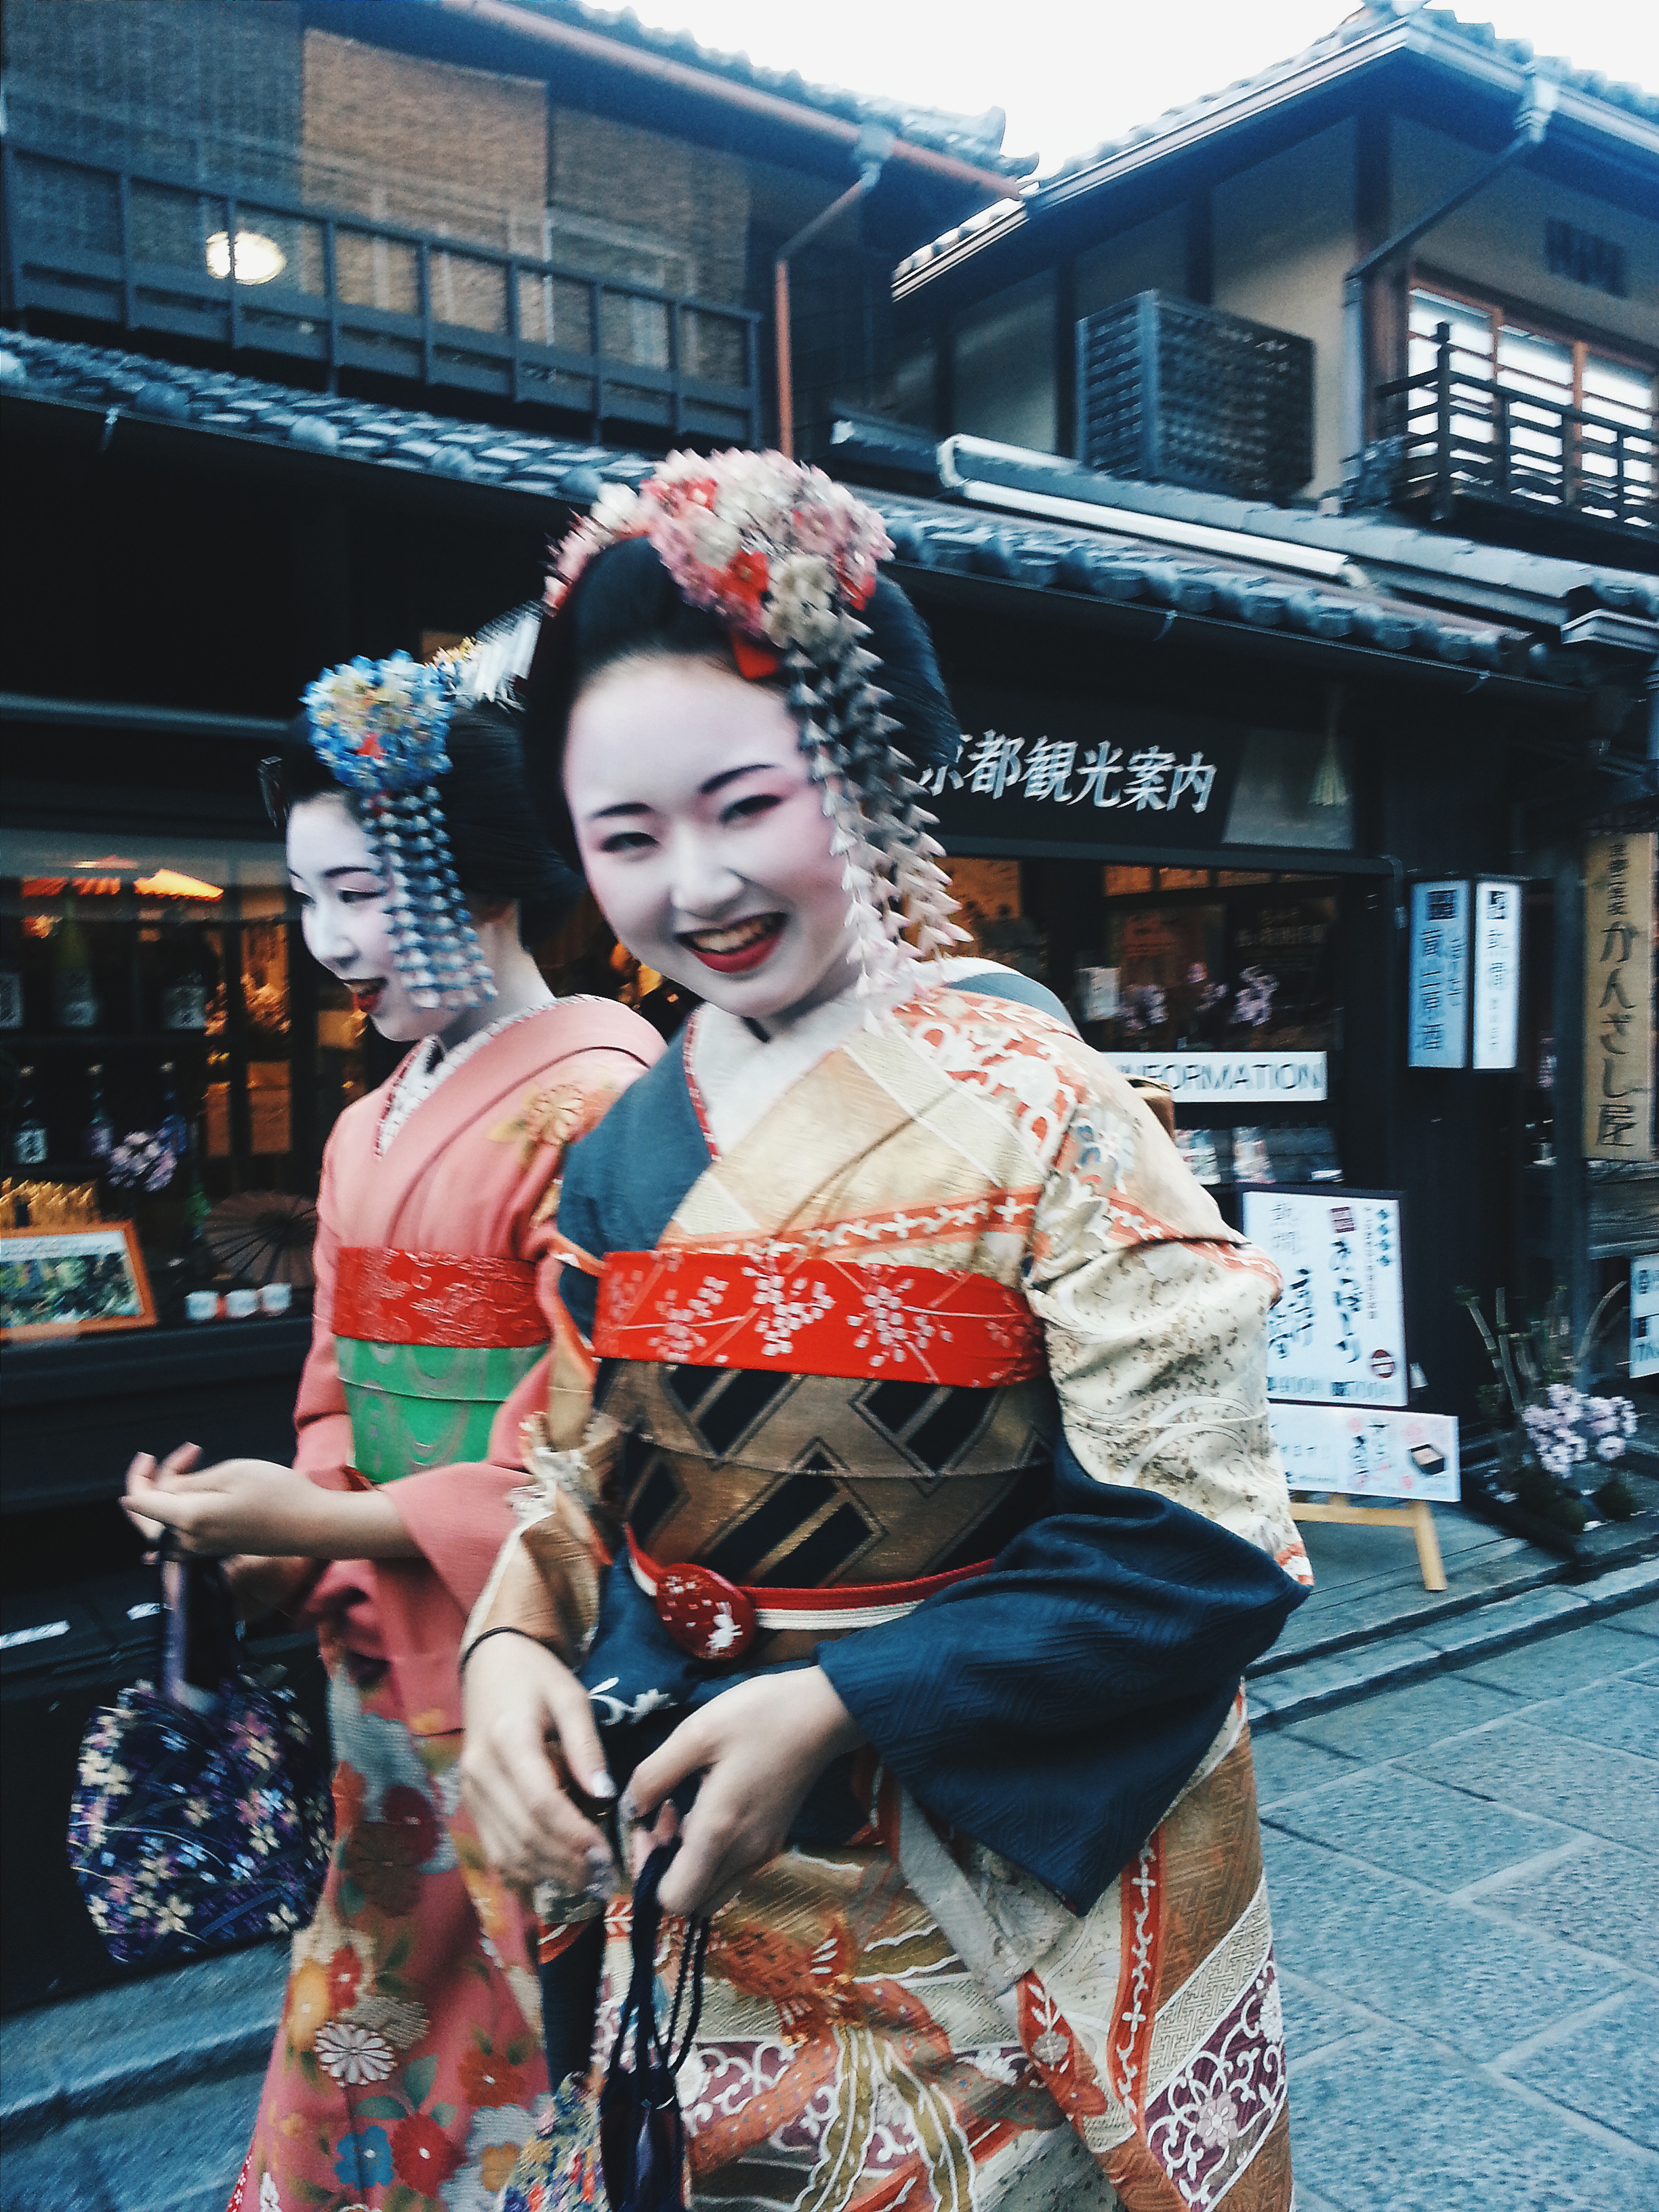 Had fun watching the girls dress-up as Maiko (geisha apprentices) in the Gion District, also known as the Geisha district where real Geishas live and train.  Cost: Free